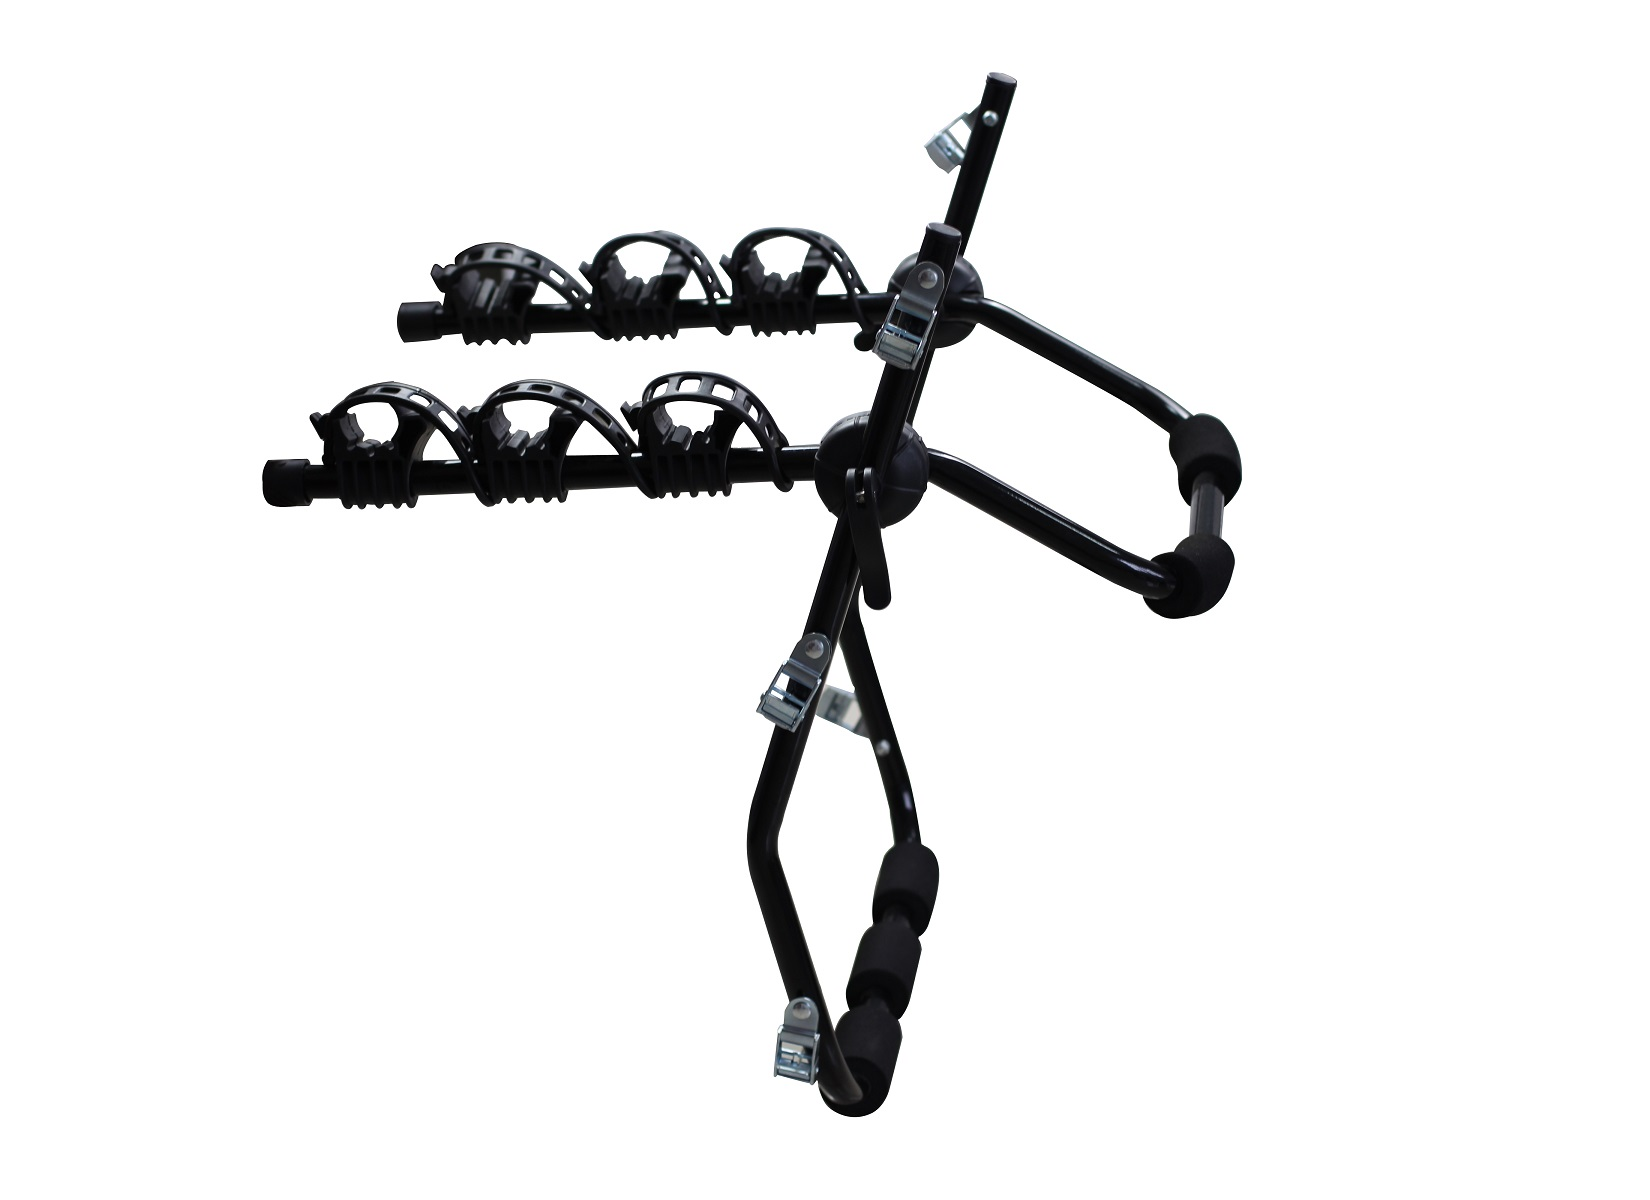 3 Bicycle Bike Rack Mount Carrier Car  Z2356